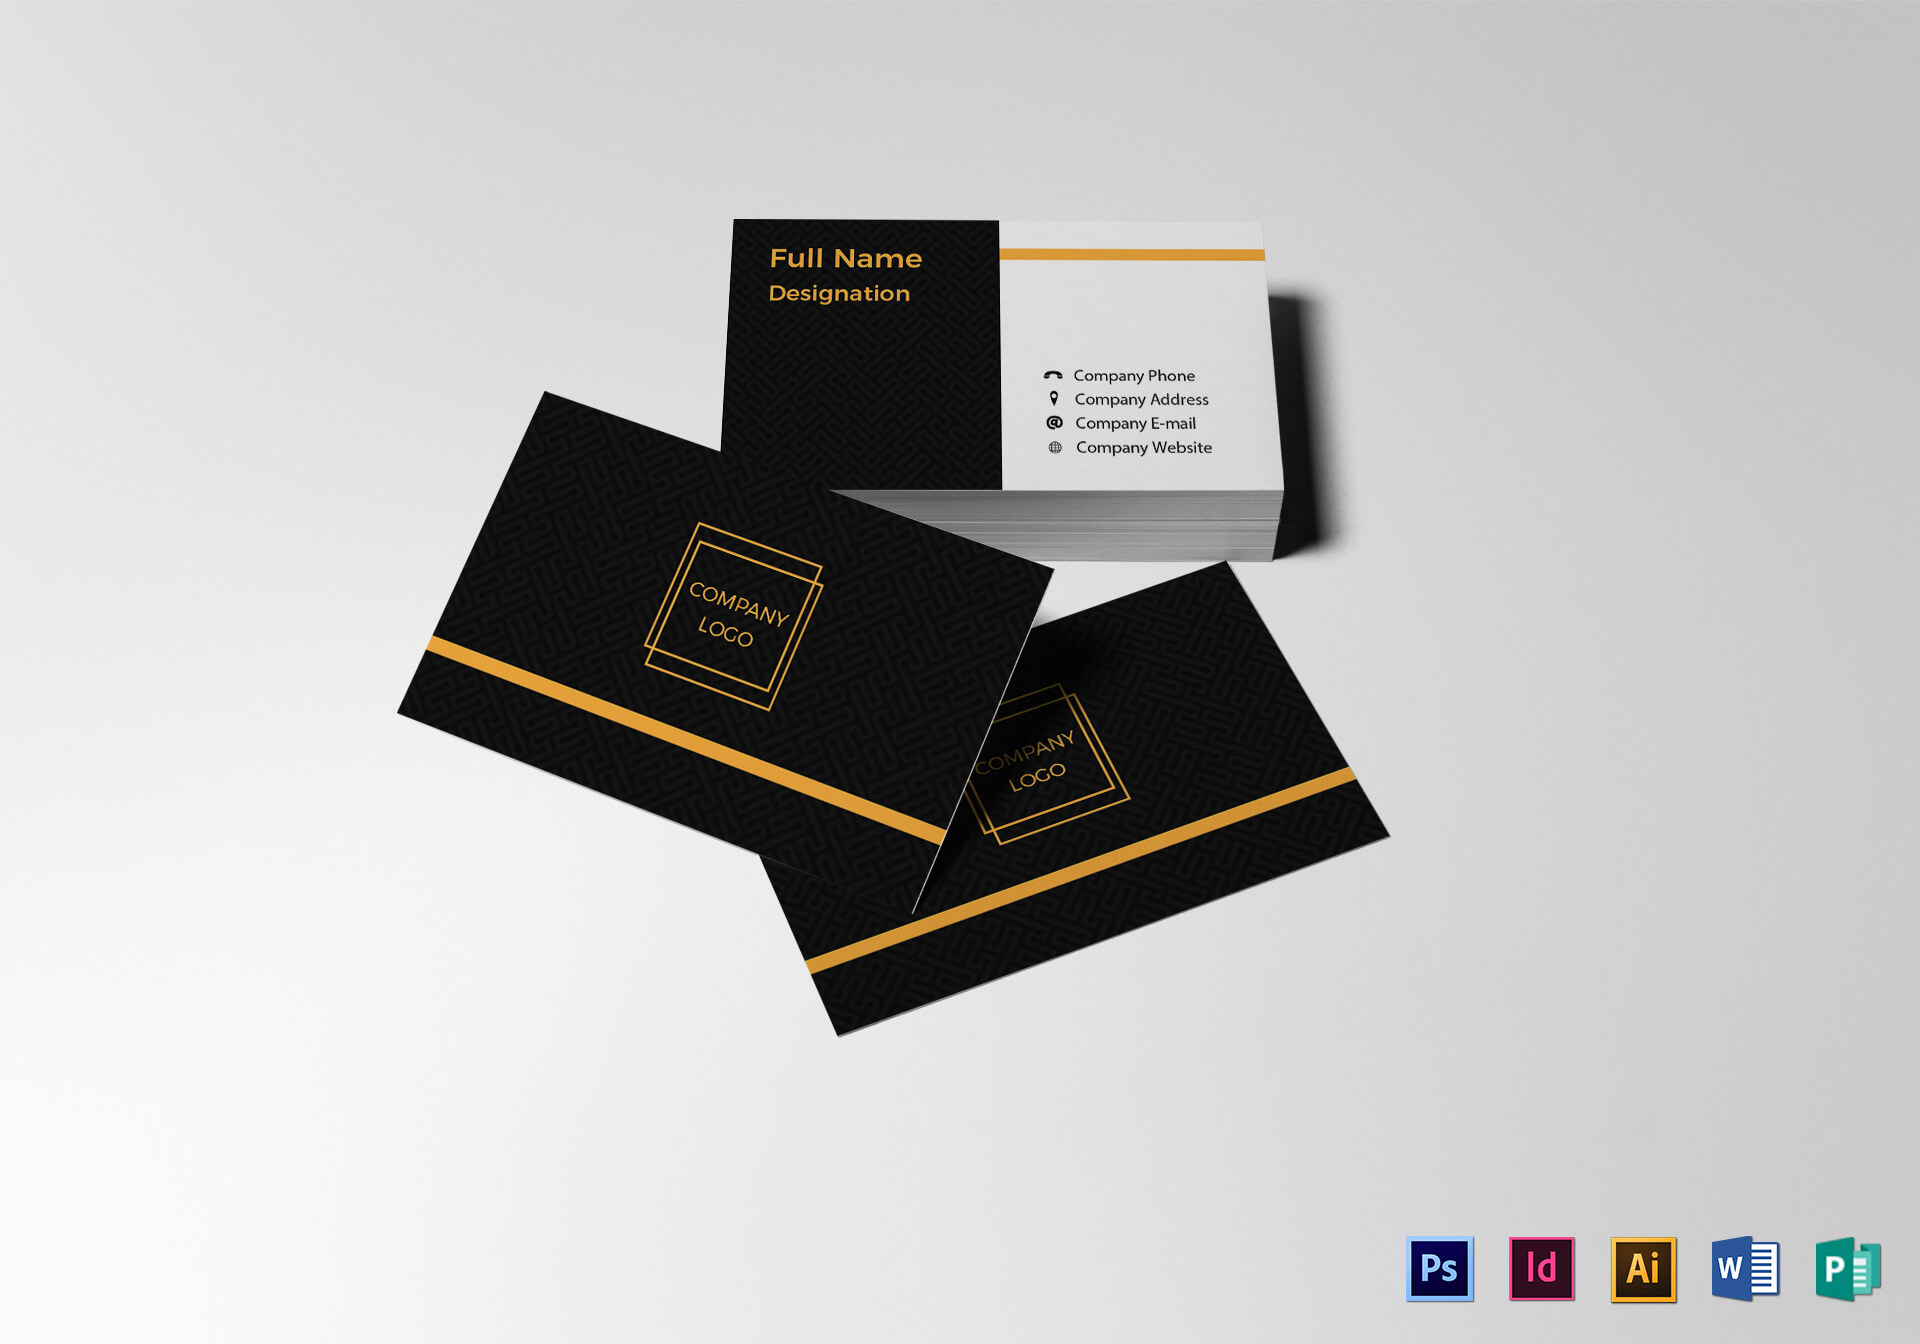 Blank Business Card Template Pertaining To Blank Business Card Template Psd